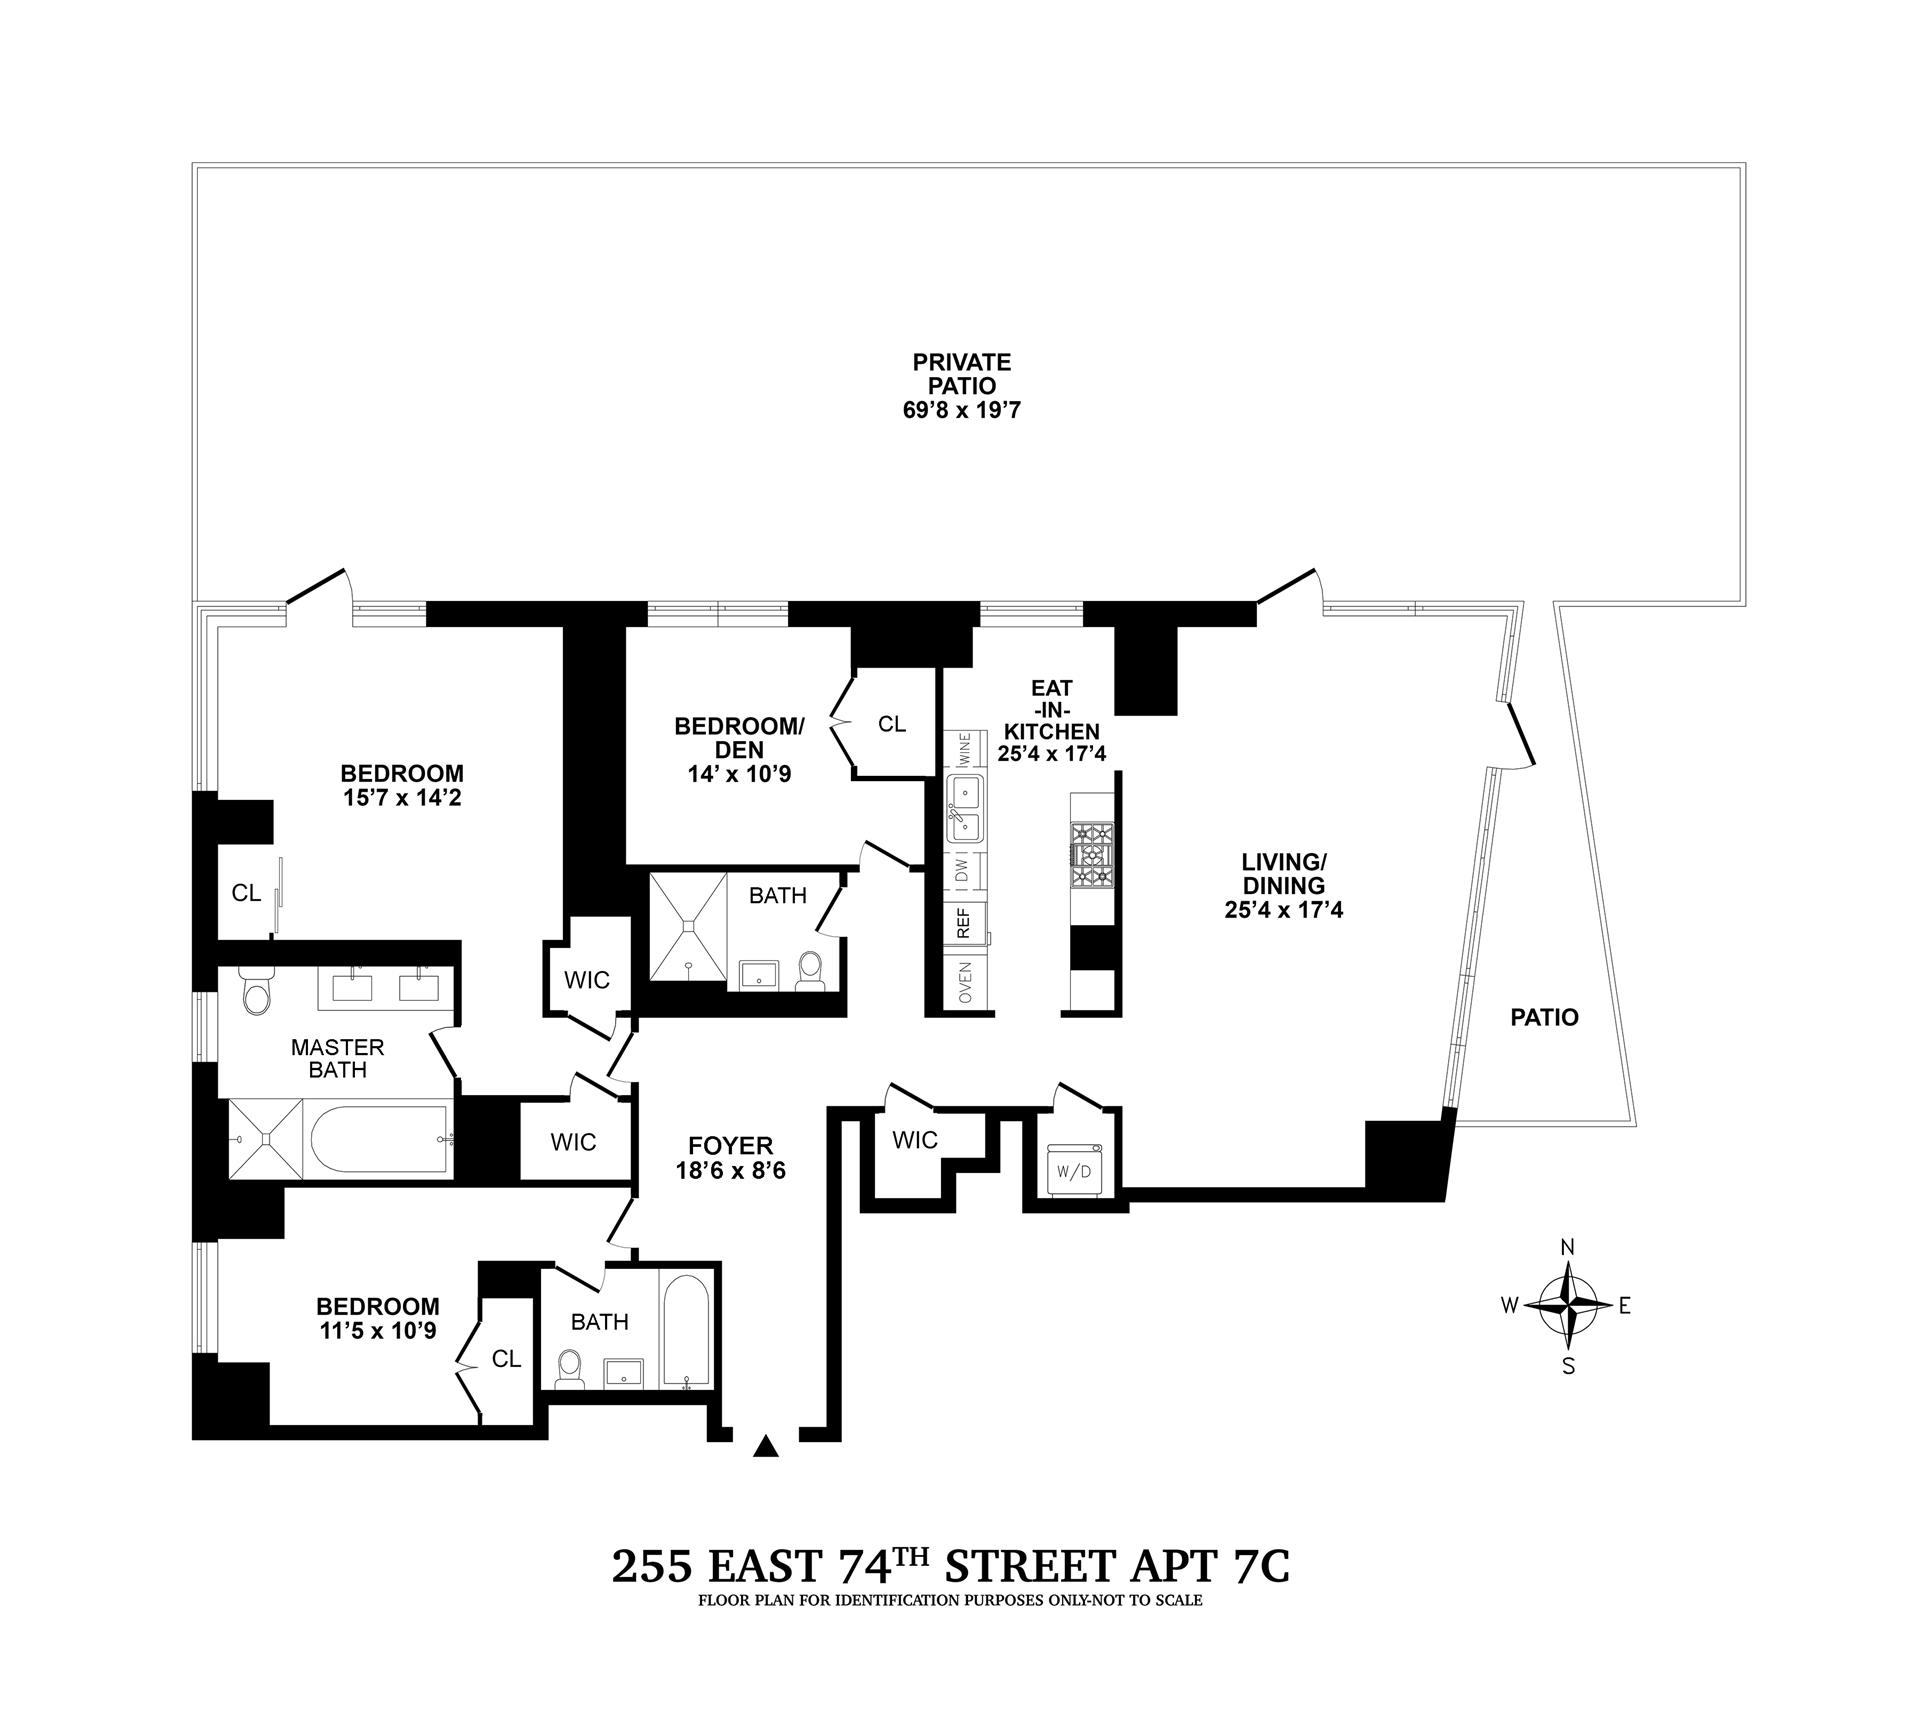 Floor plan of CASA 74, 255 East 74th St, 7C - Upper East Side, New York